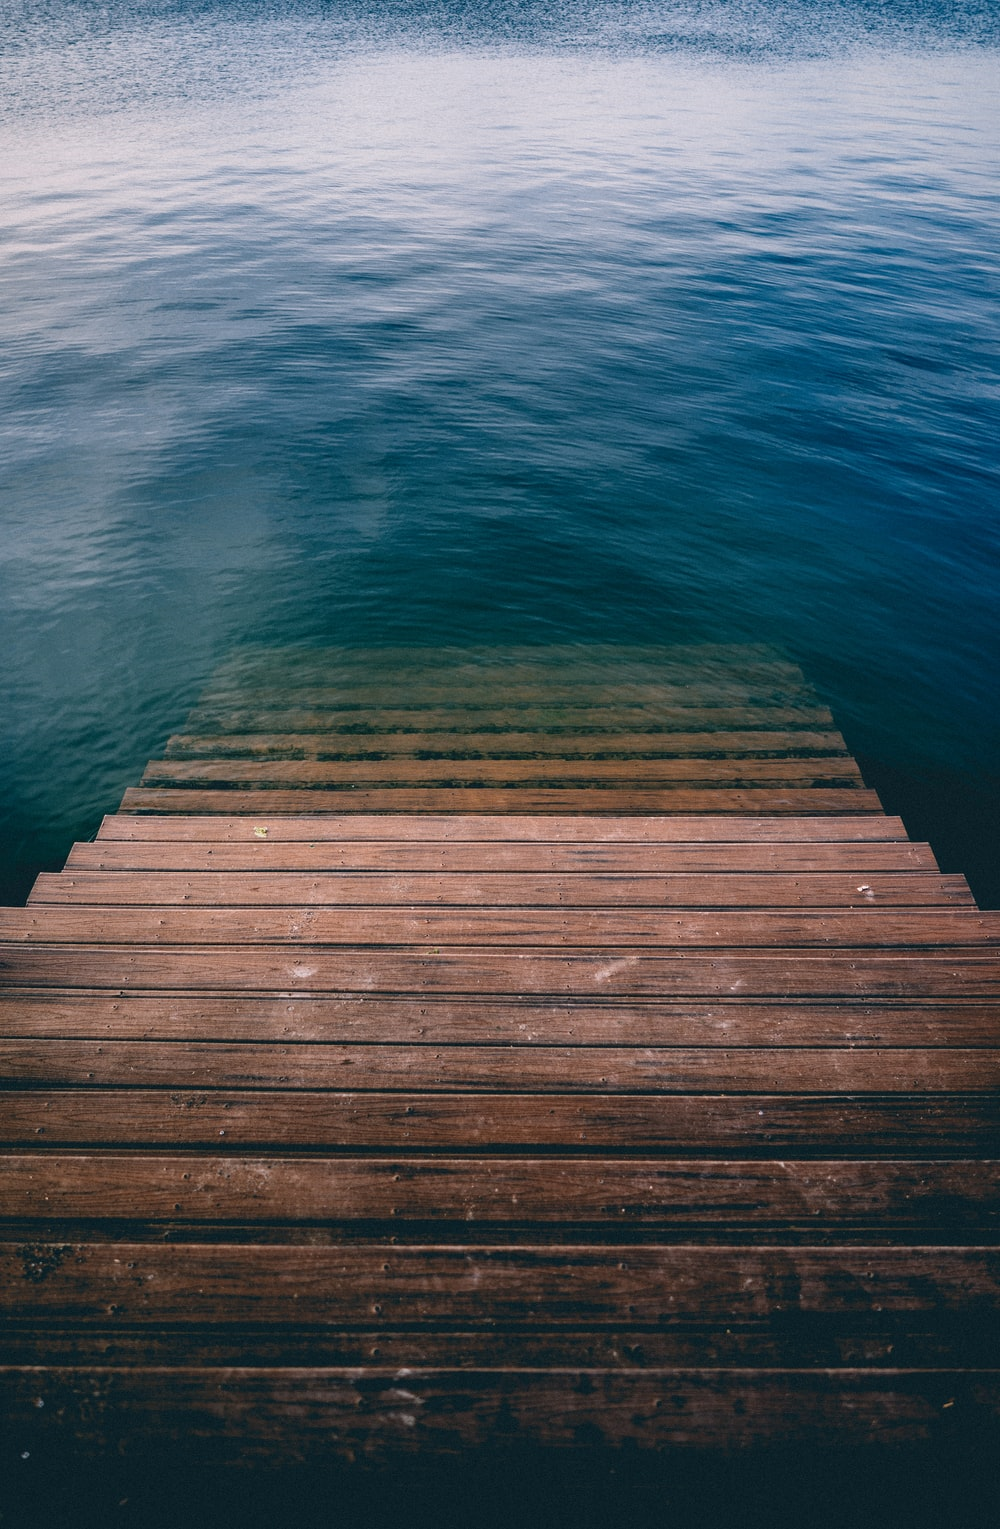 brown wooden stair on calm body of water